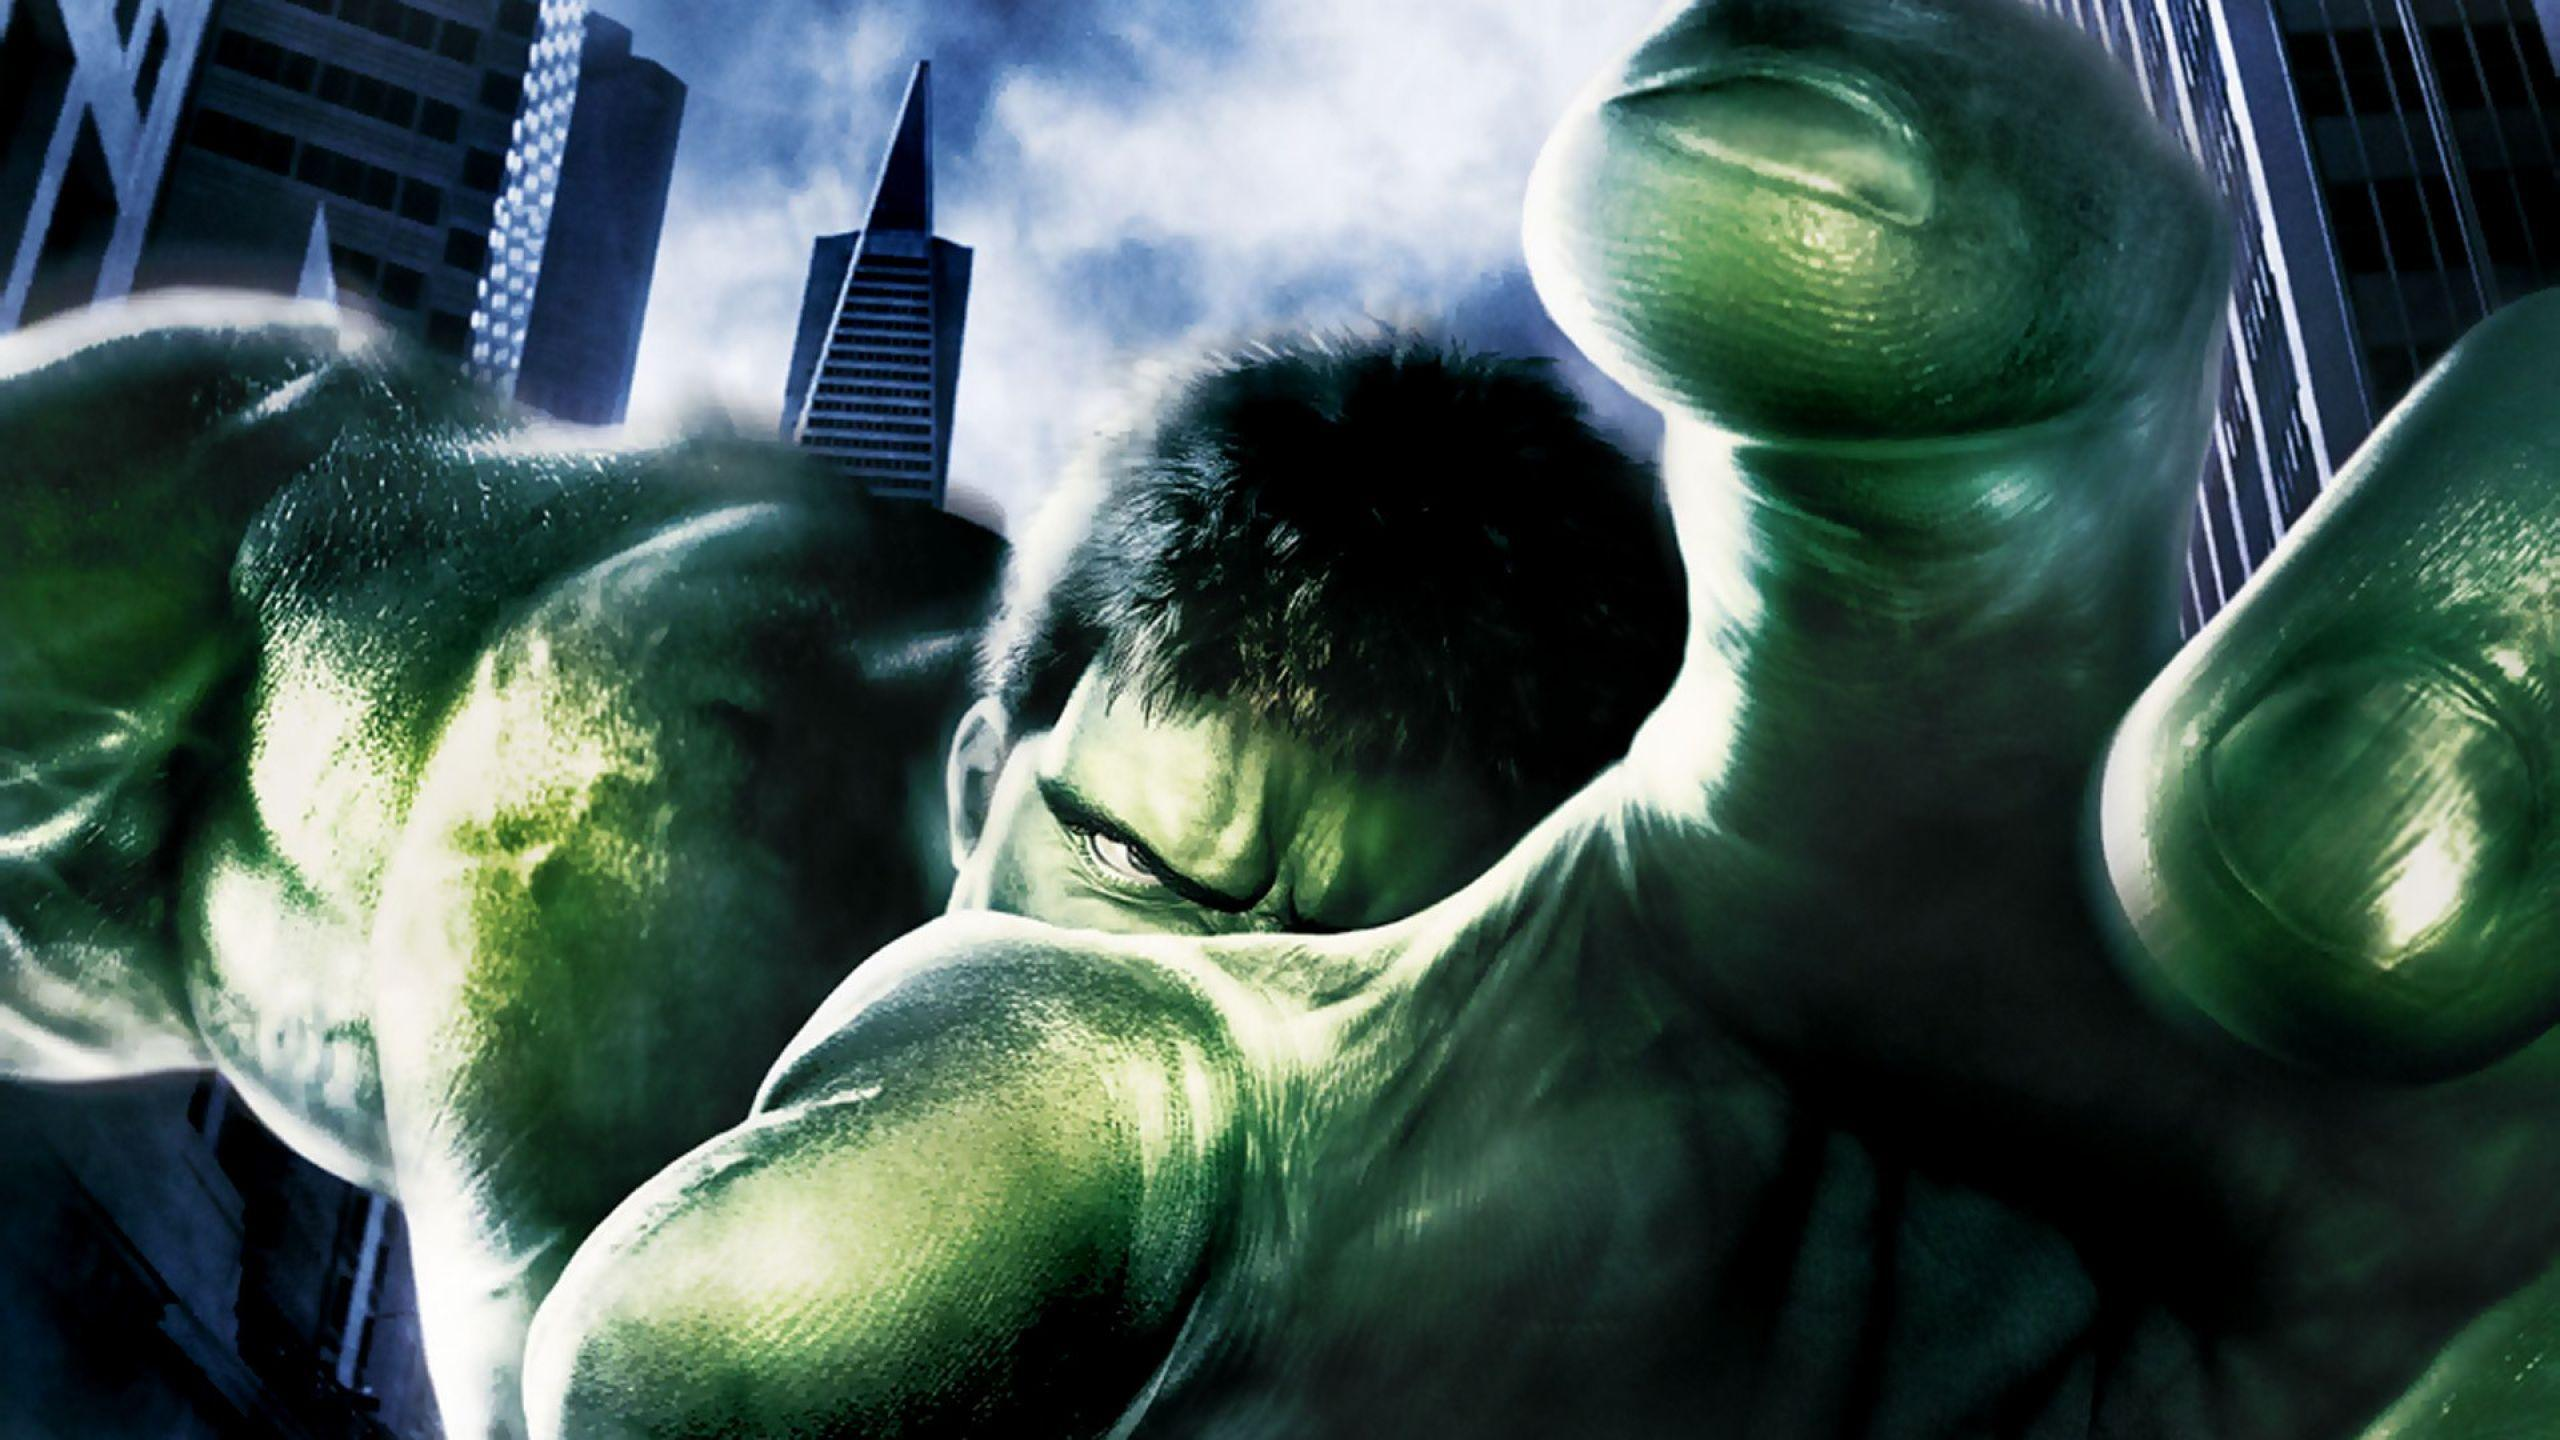 Wallpapers Hulk 3D Hd 1080P 11 HD Wallpapers